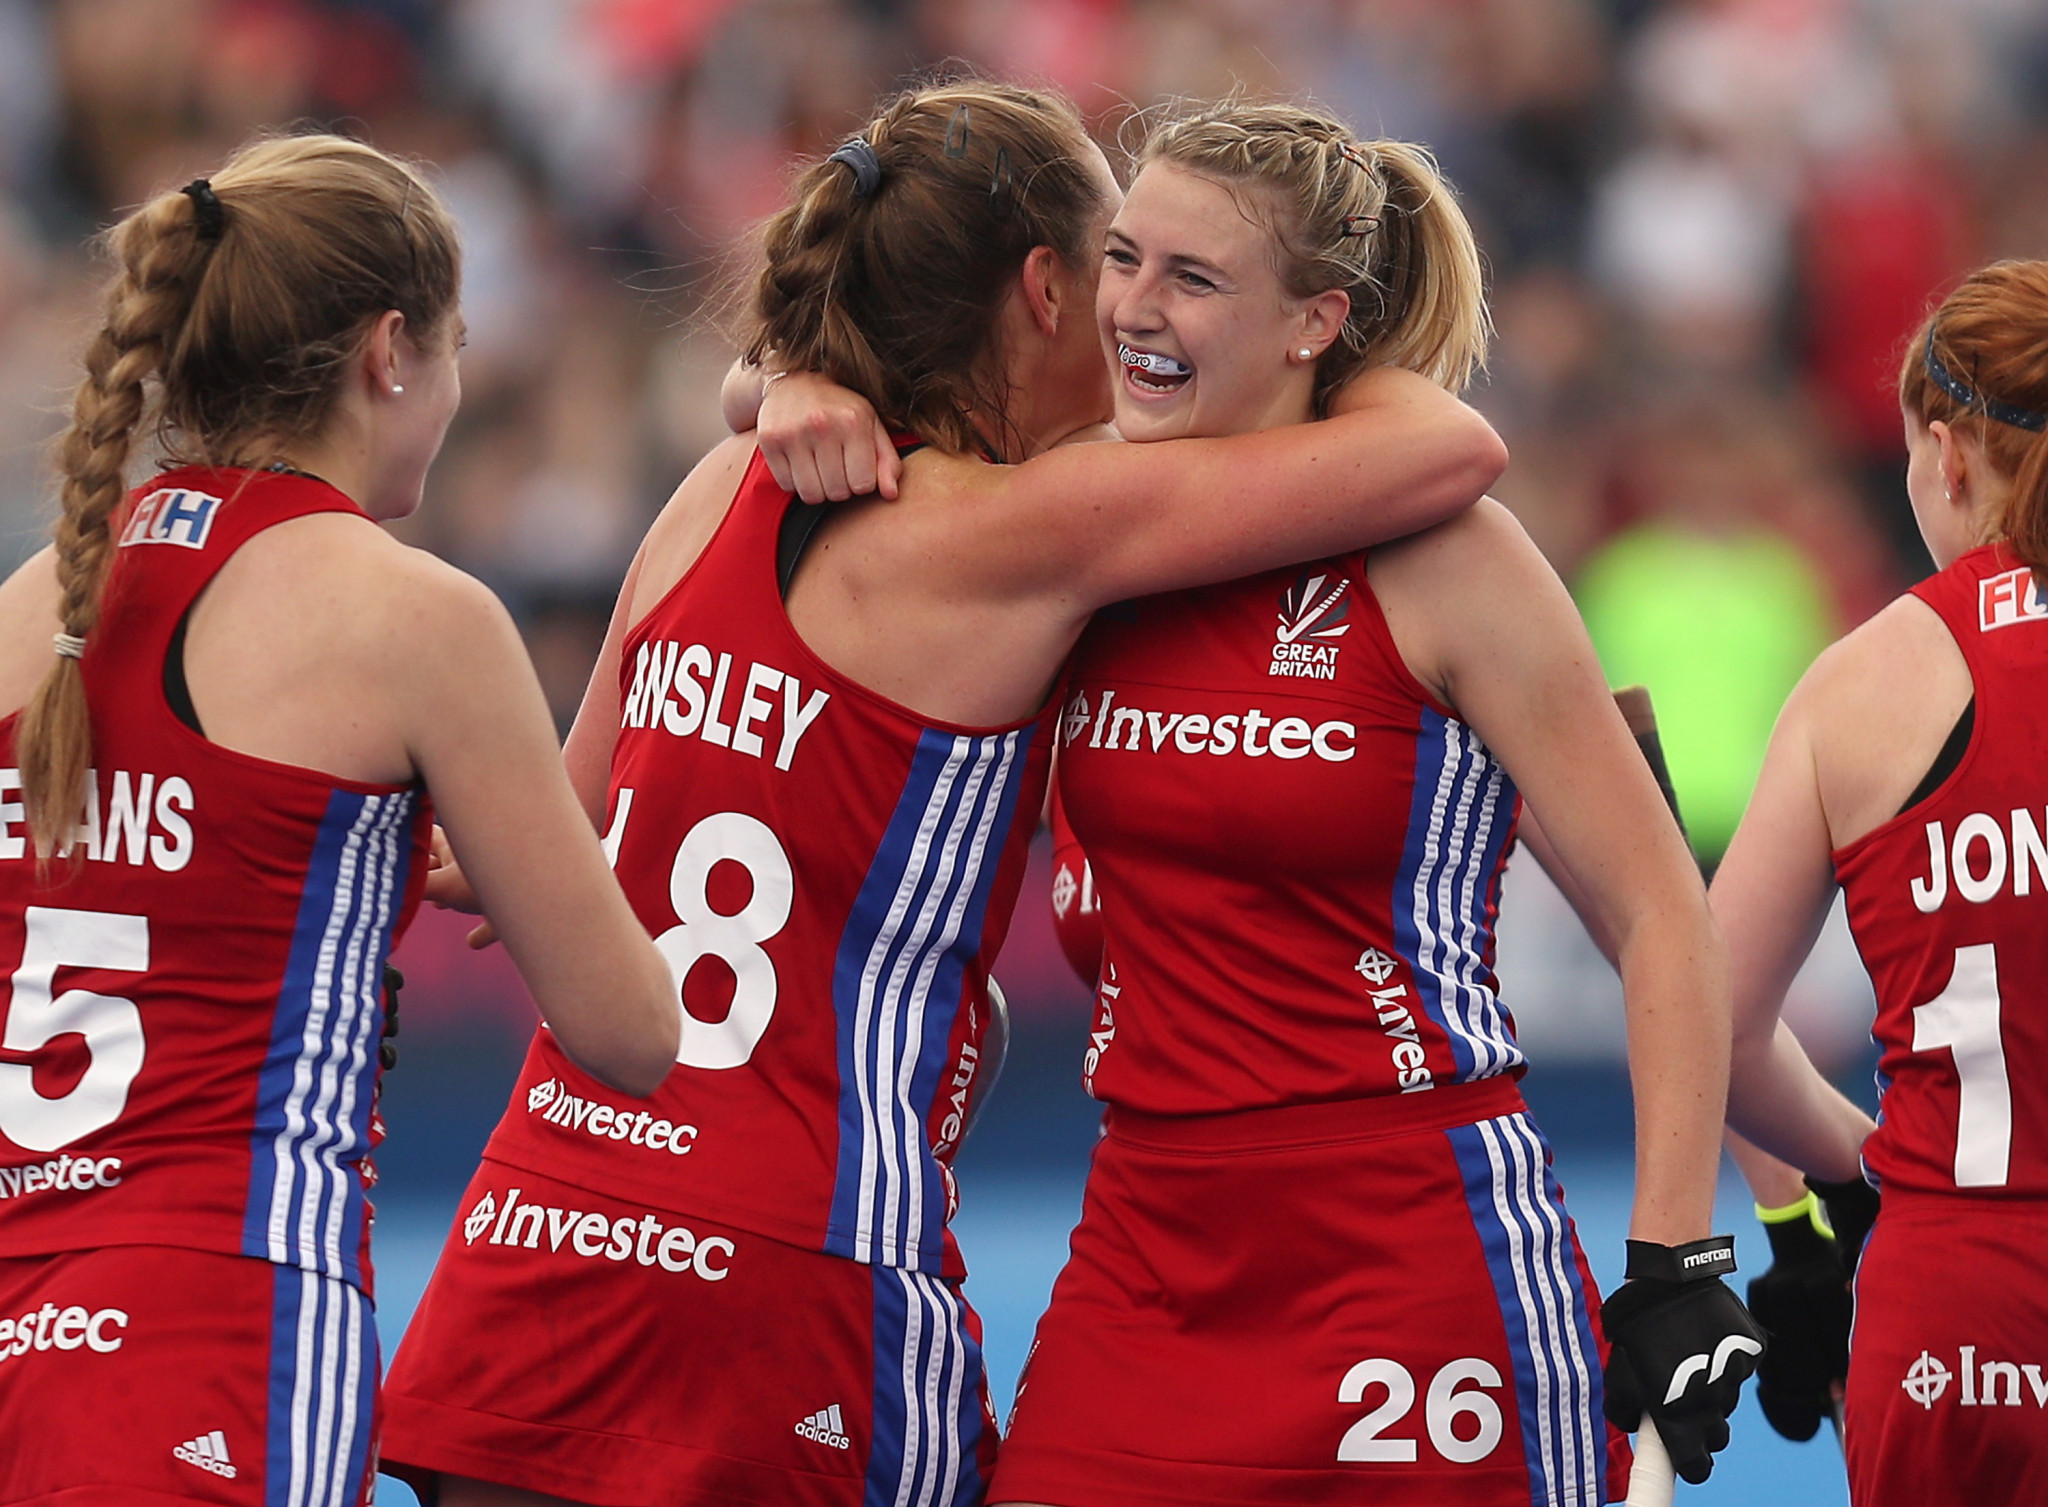 Lily Owsley was on target for Great Britain ©Getty Images